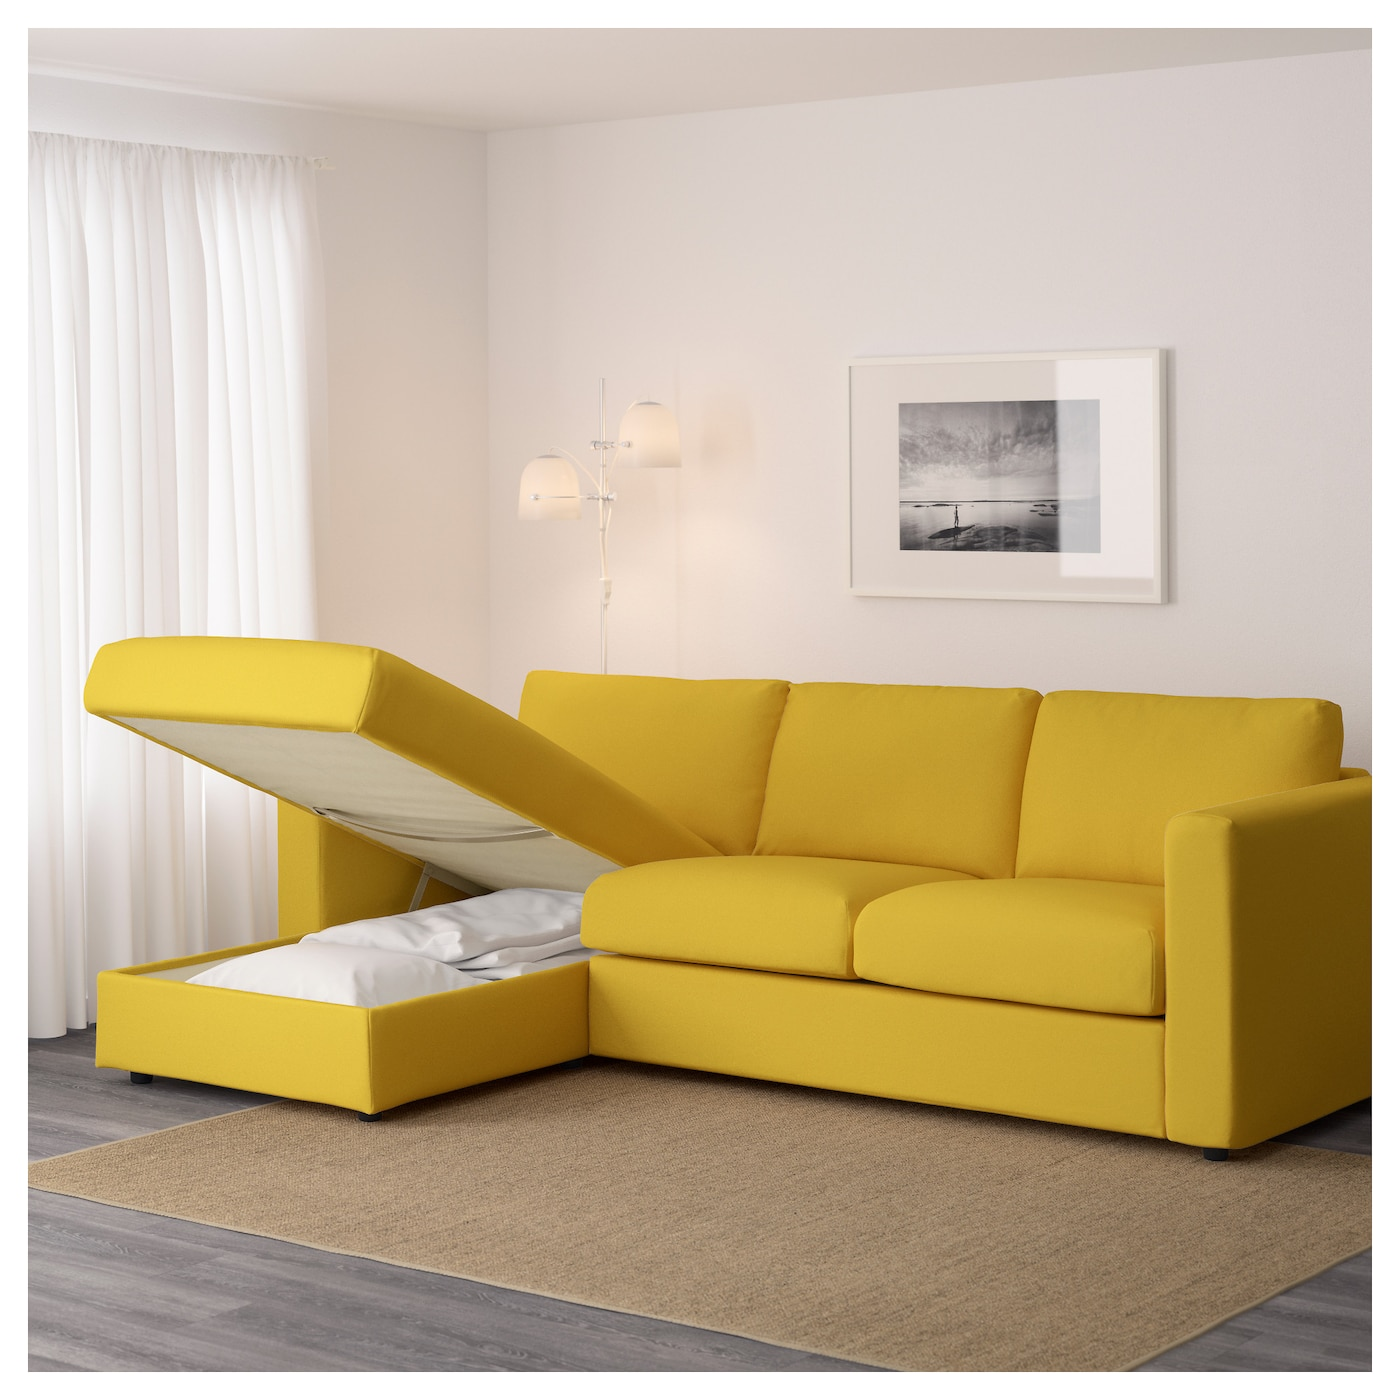 VIMLE 3 seat sofa With chaise longue gräsbo golden yellow IKEA